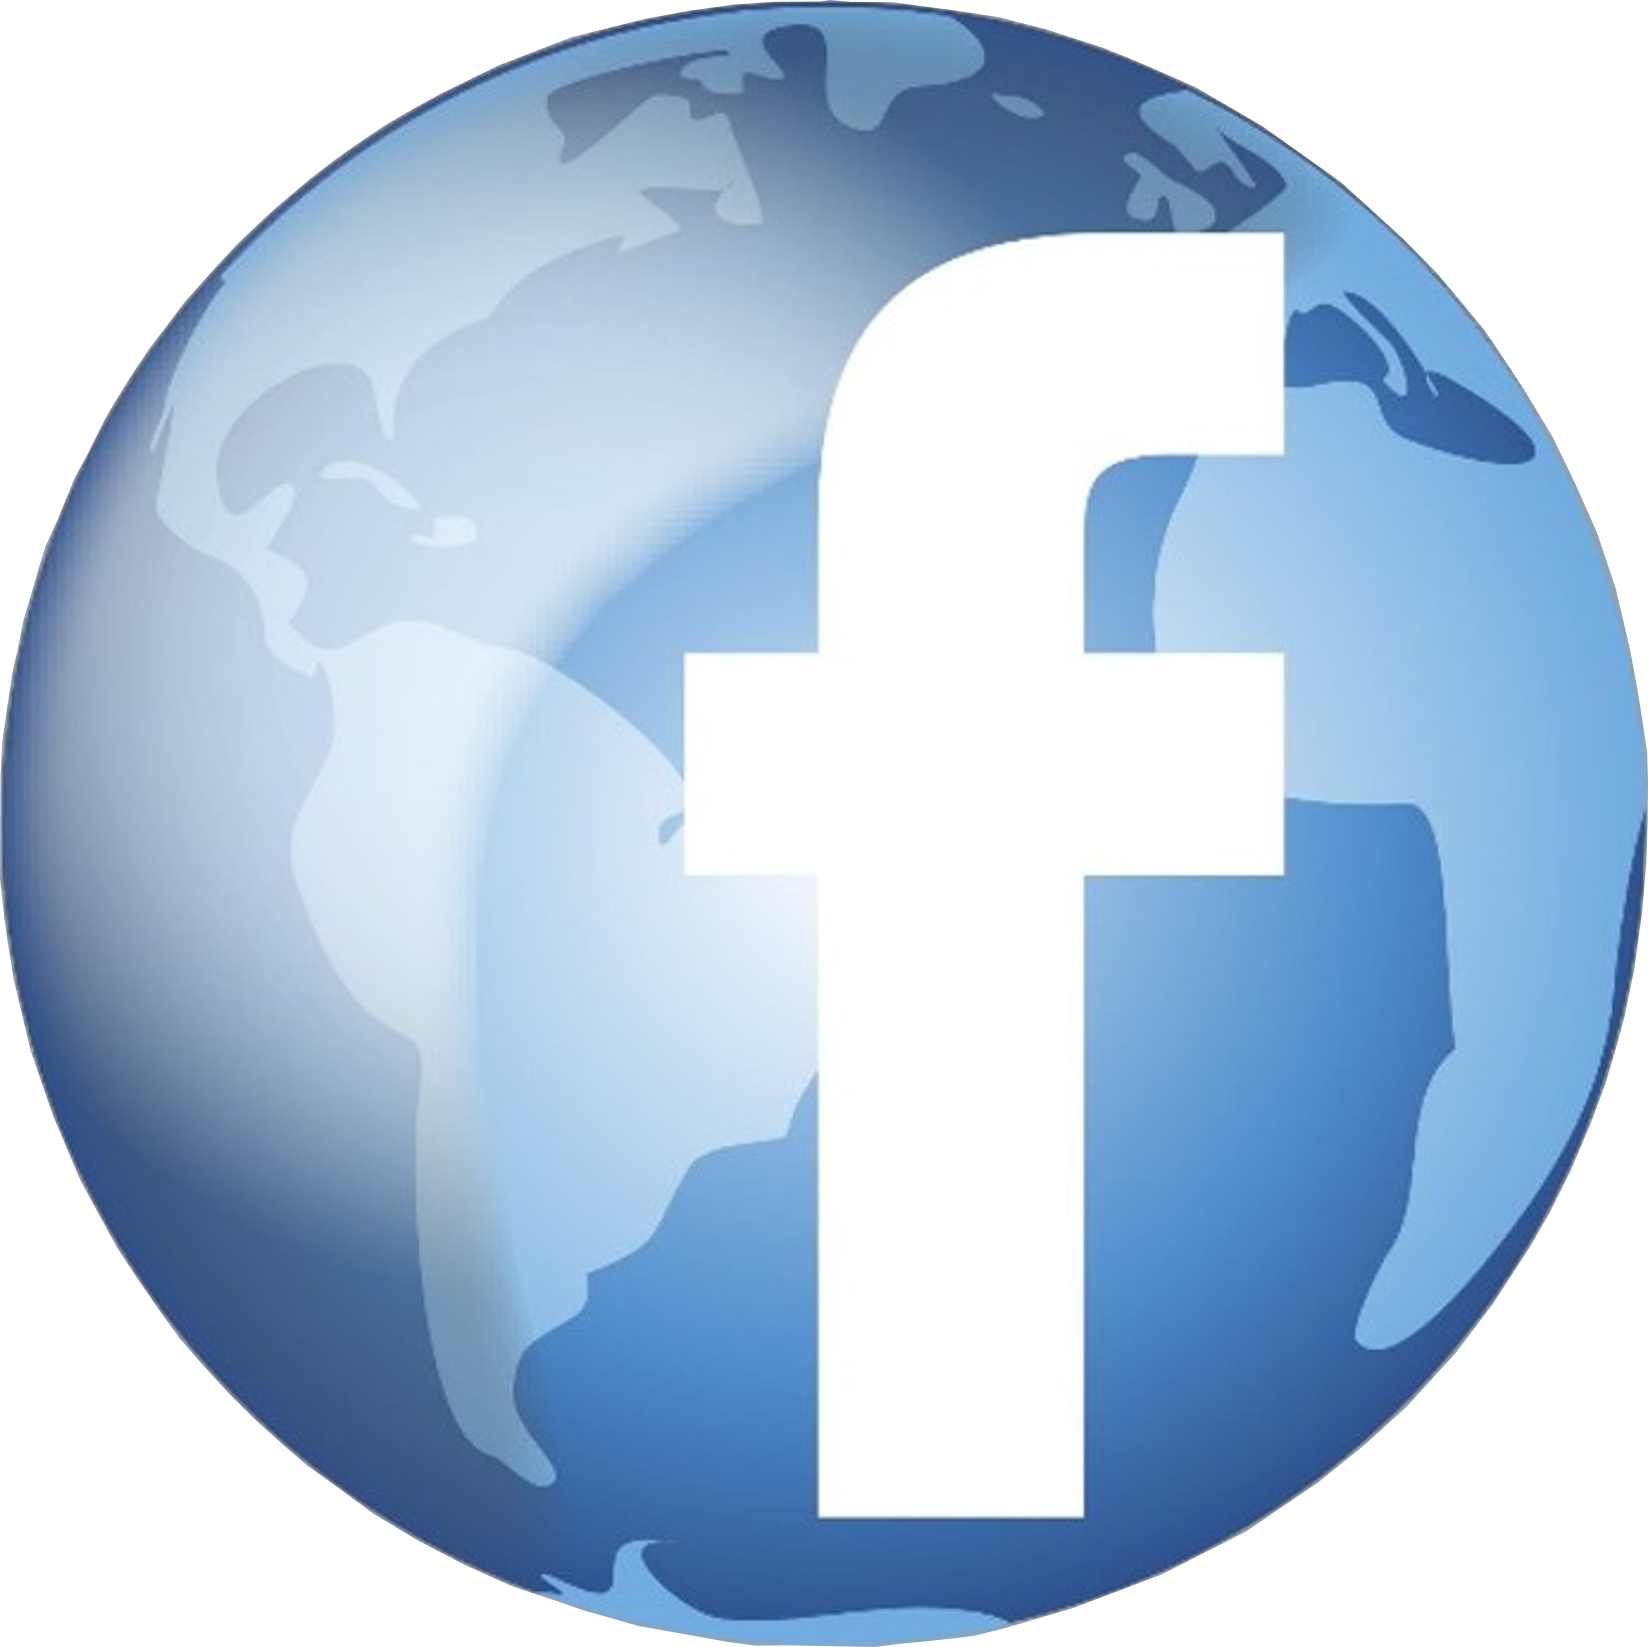 Media Globe Facebook Advertising Social World Connect PNG Image